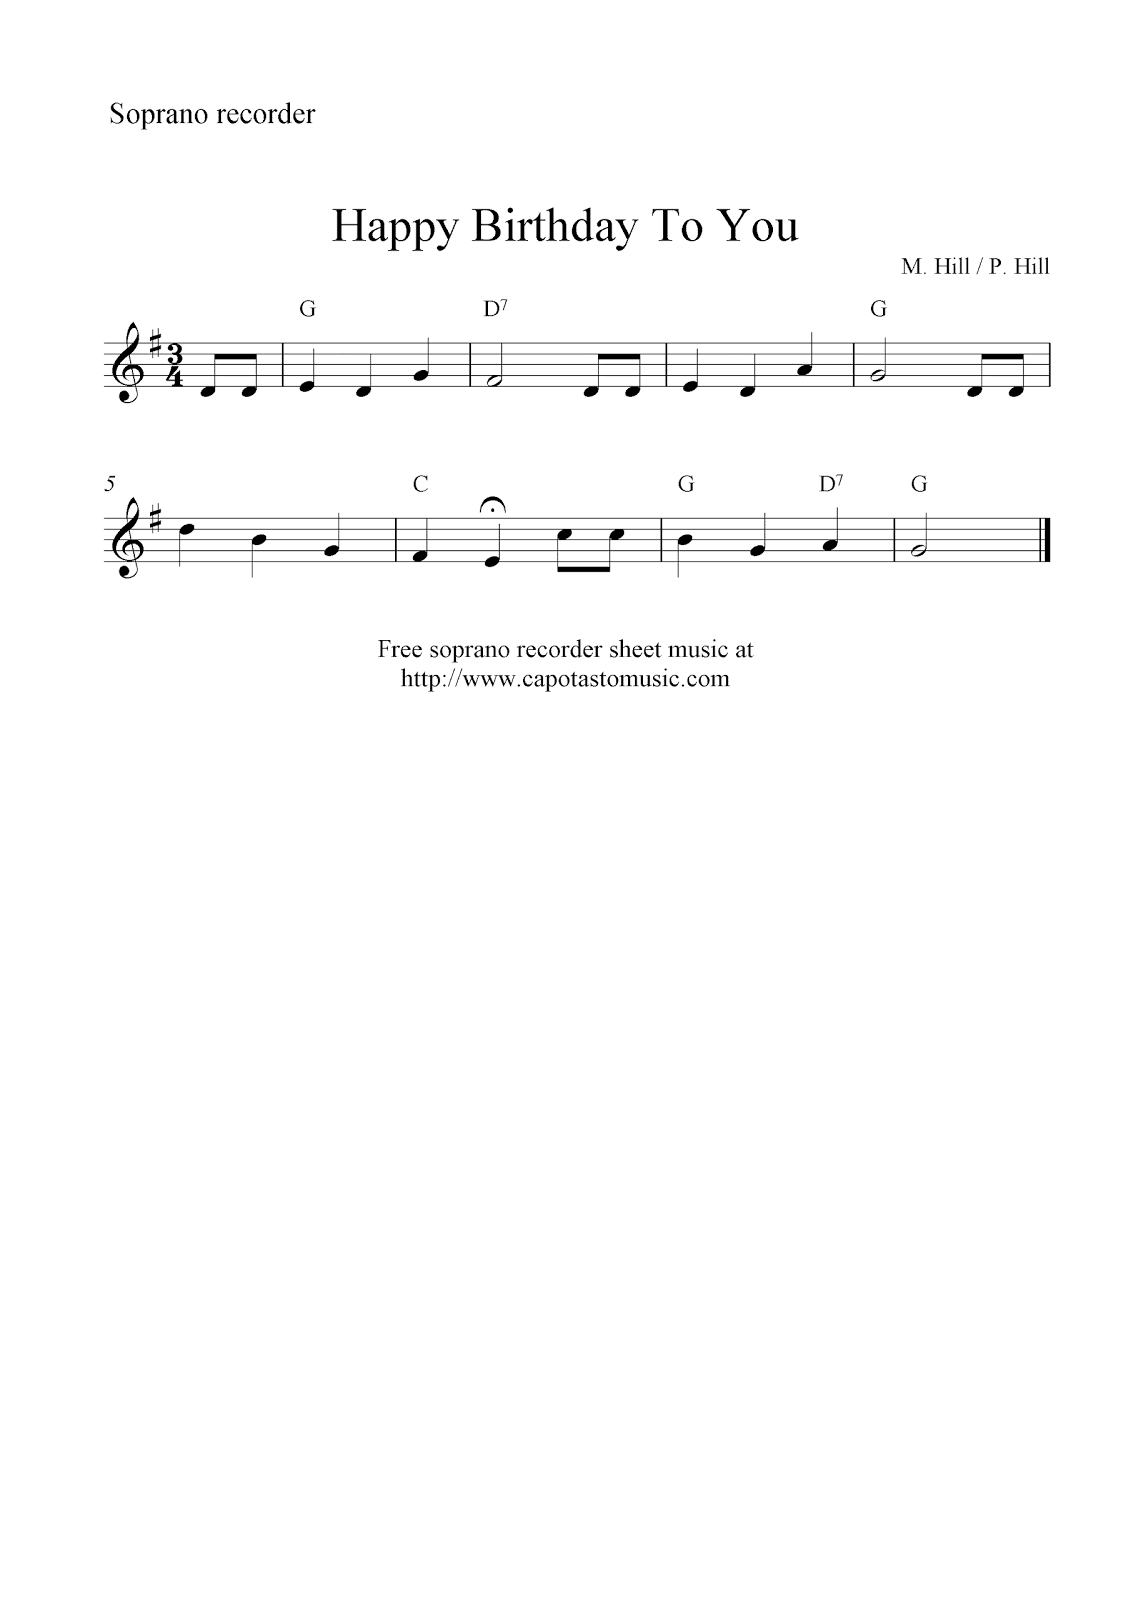 Happy Birthday To You, free soprano recorder sheet music notes